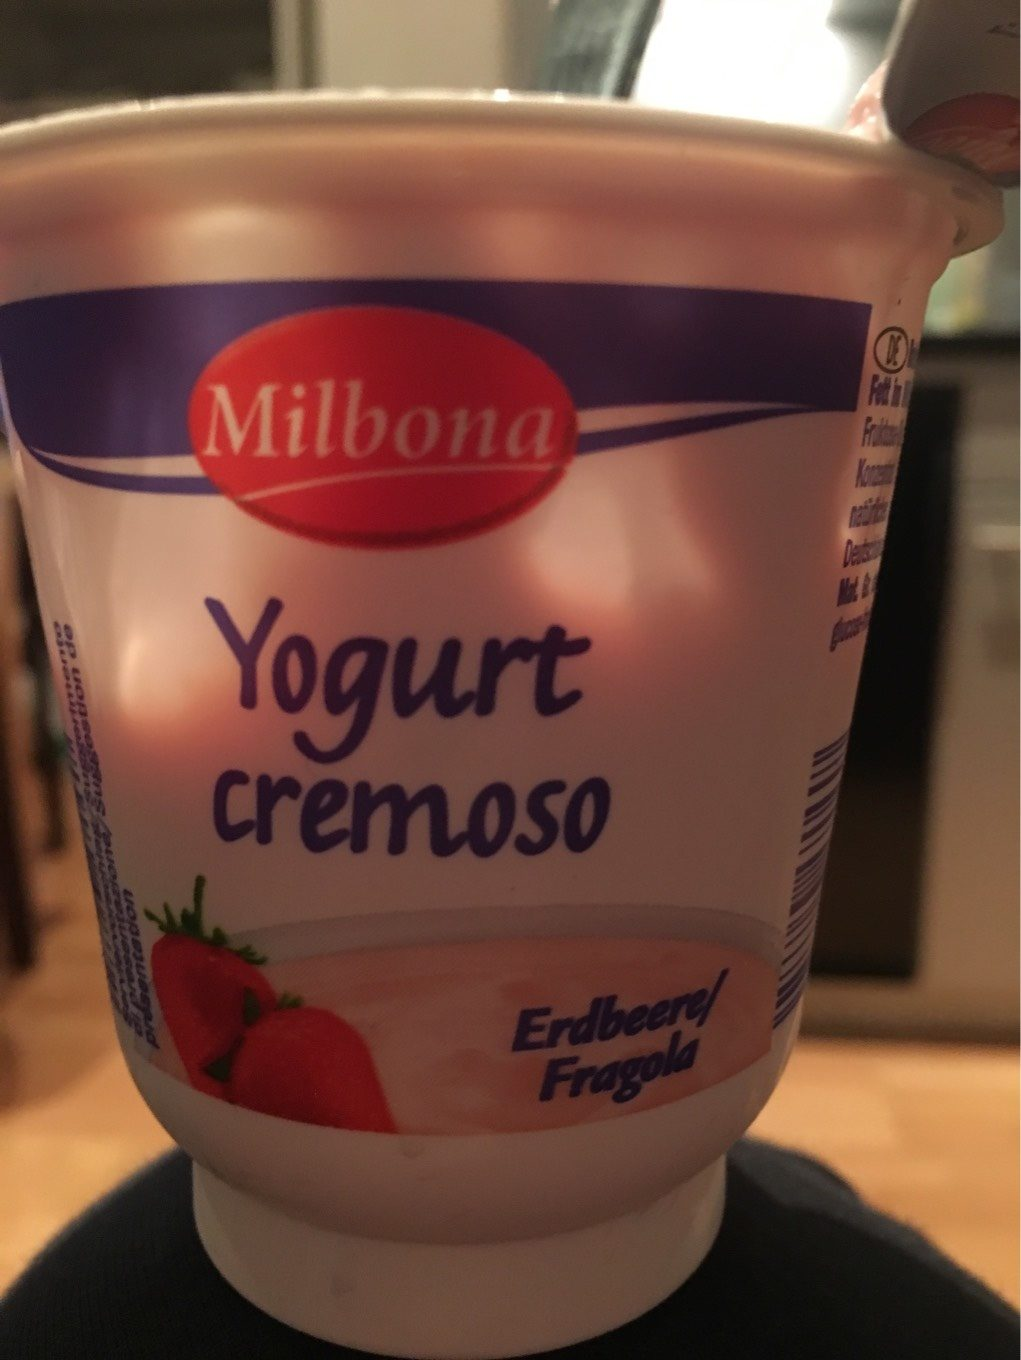 Yogurt cremoso - Product - fr